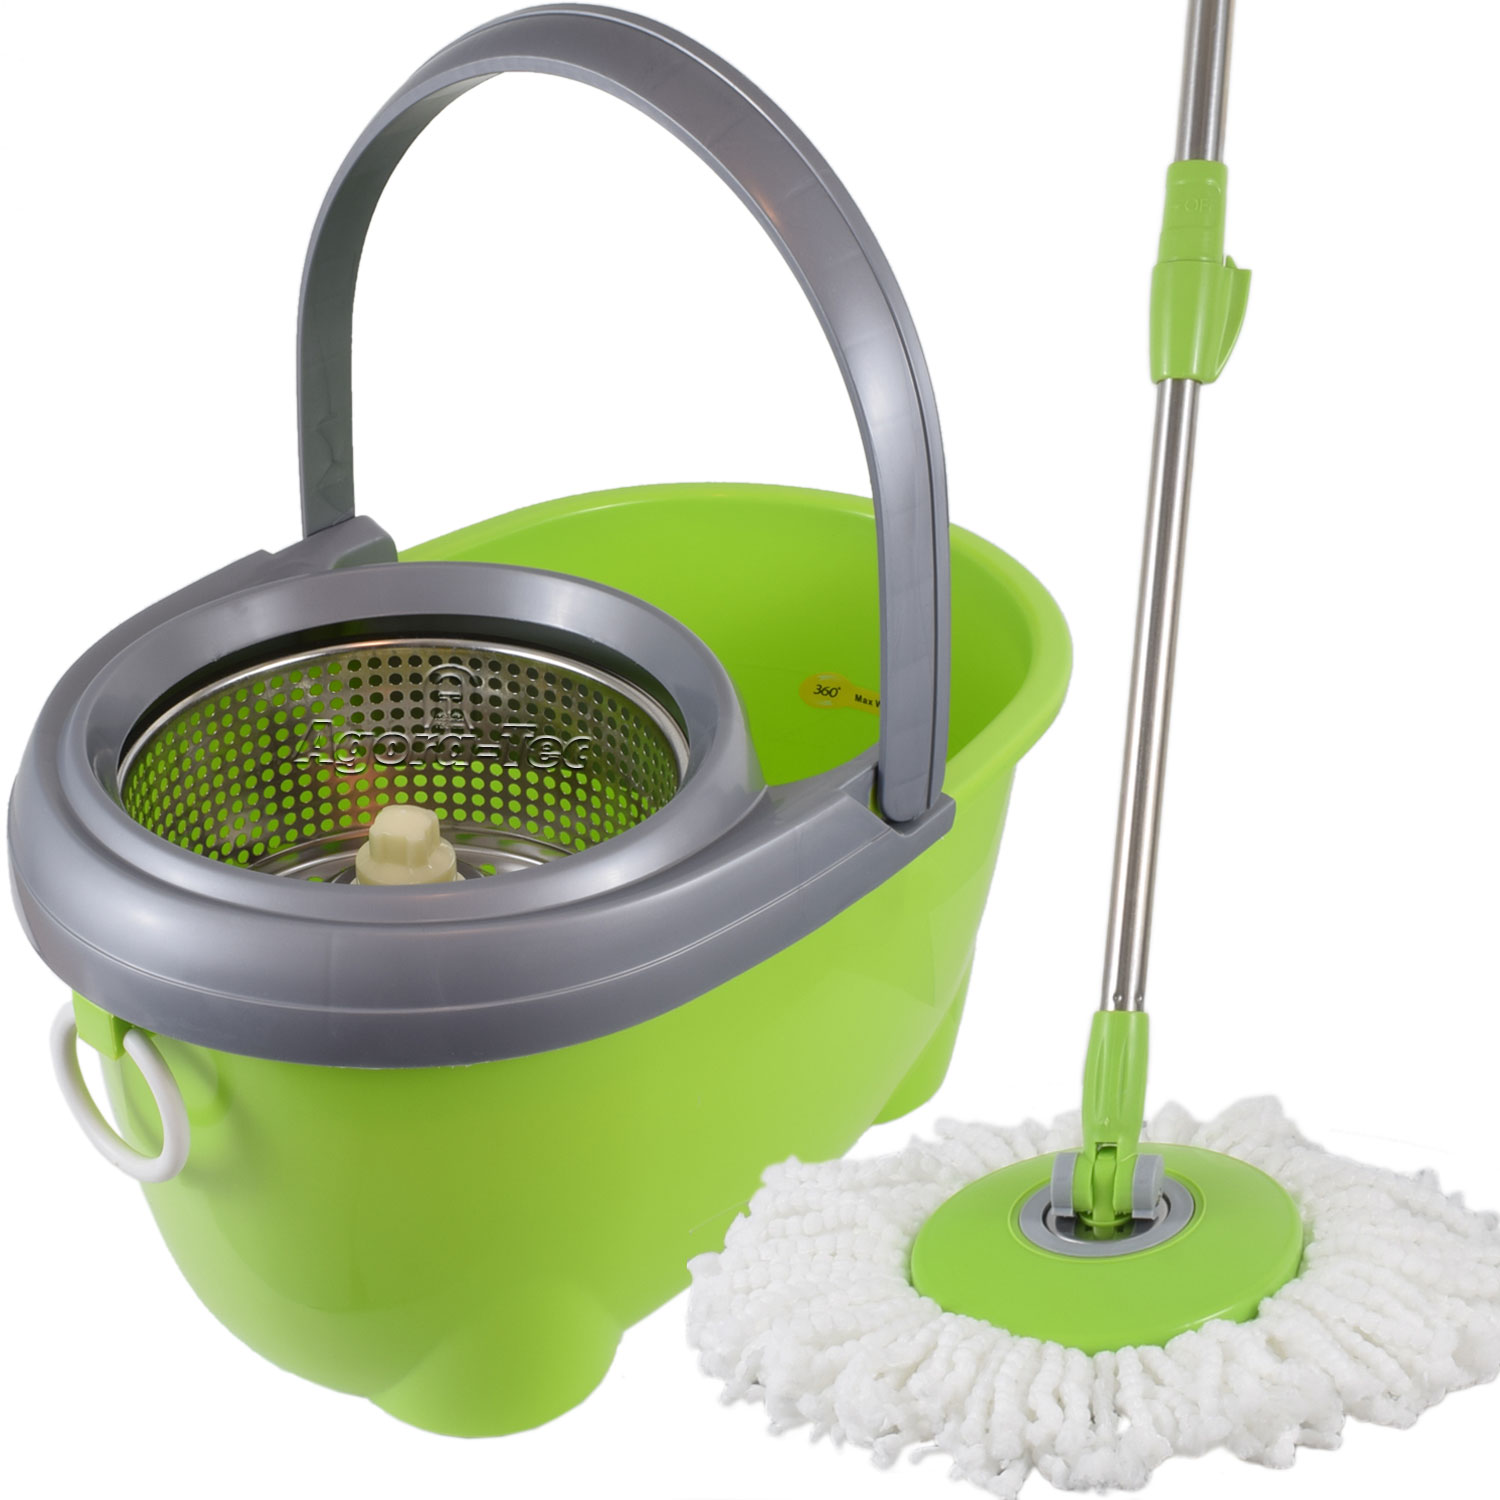 wischmop spin mop set bodenwischer 360 schleuder mop bodenreiniger wischmopp ebay. Black Bedroom Furniture Sets. Home Design Ideas